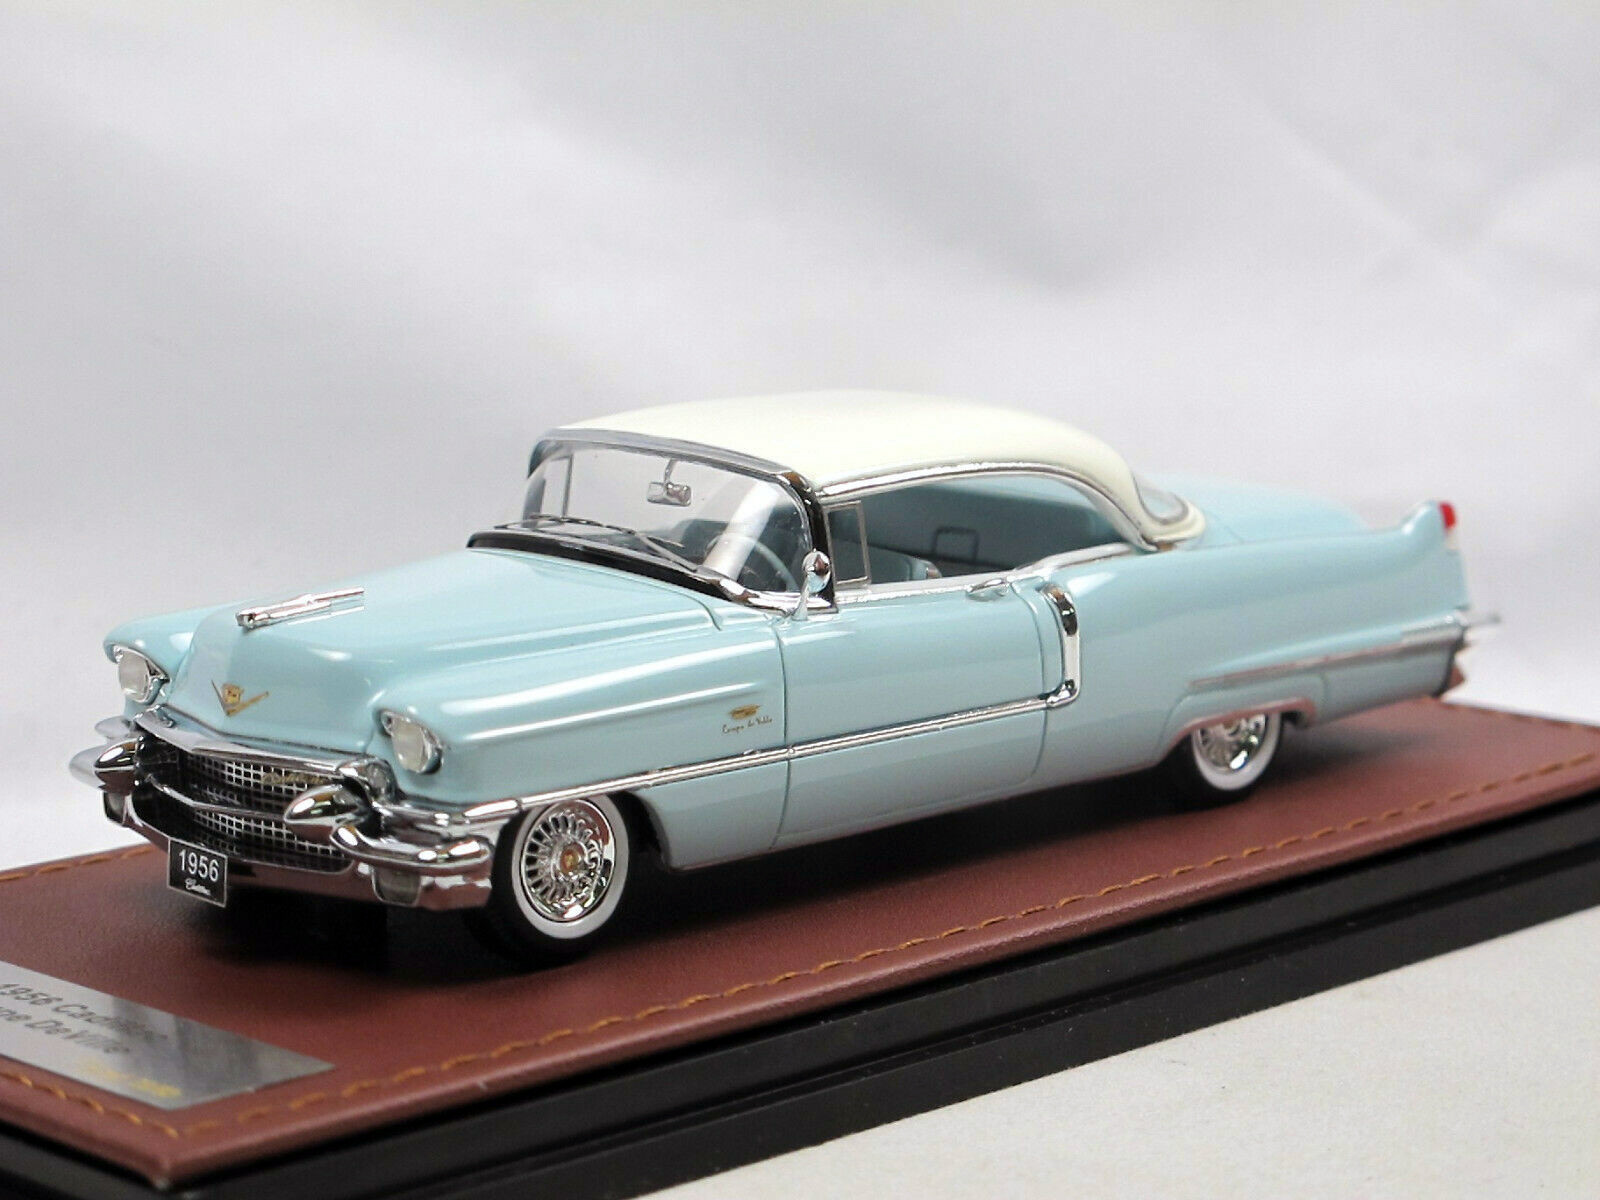 Cadillac Coupe DeVille '56 Sonic Blue & White_Ltd Ed 1 of 80_GLM119405